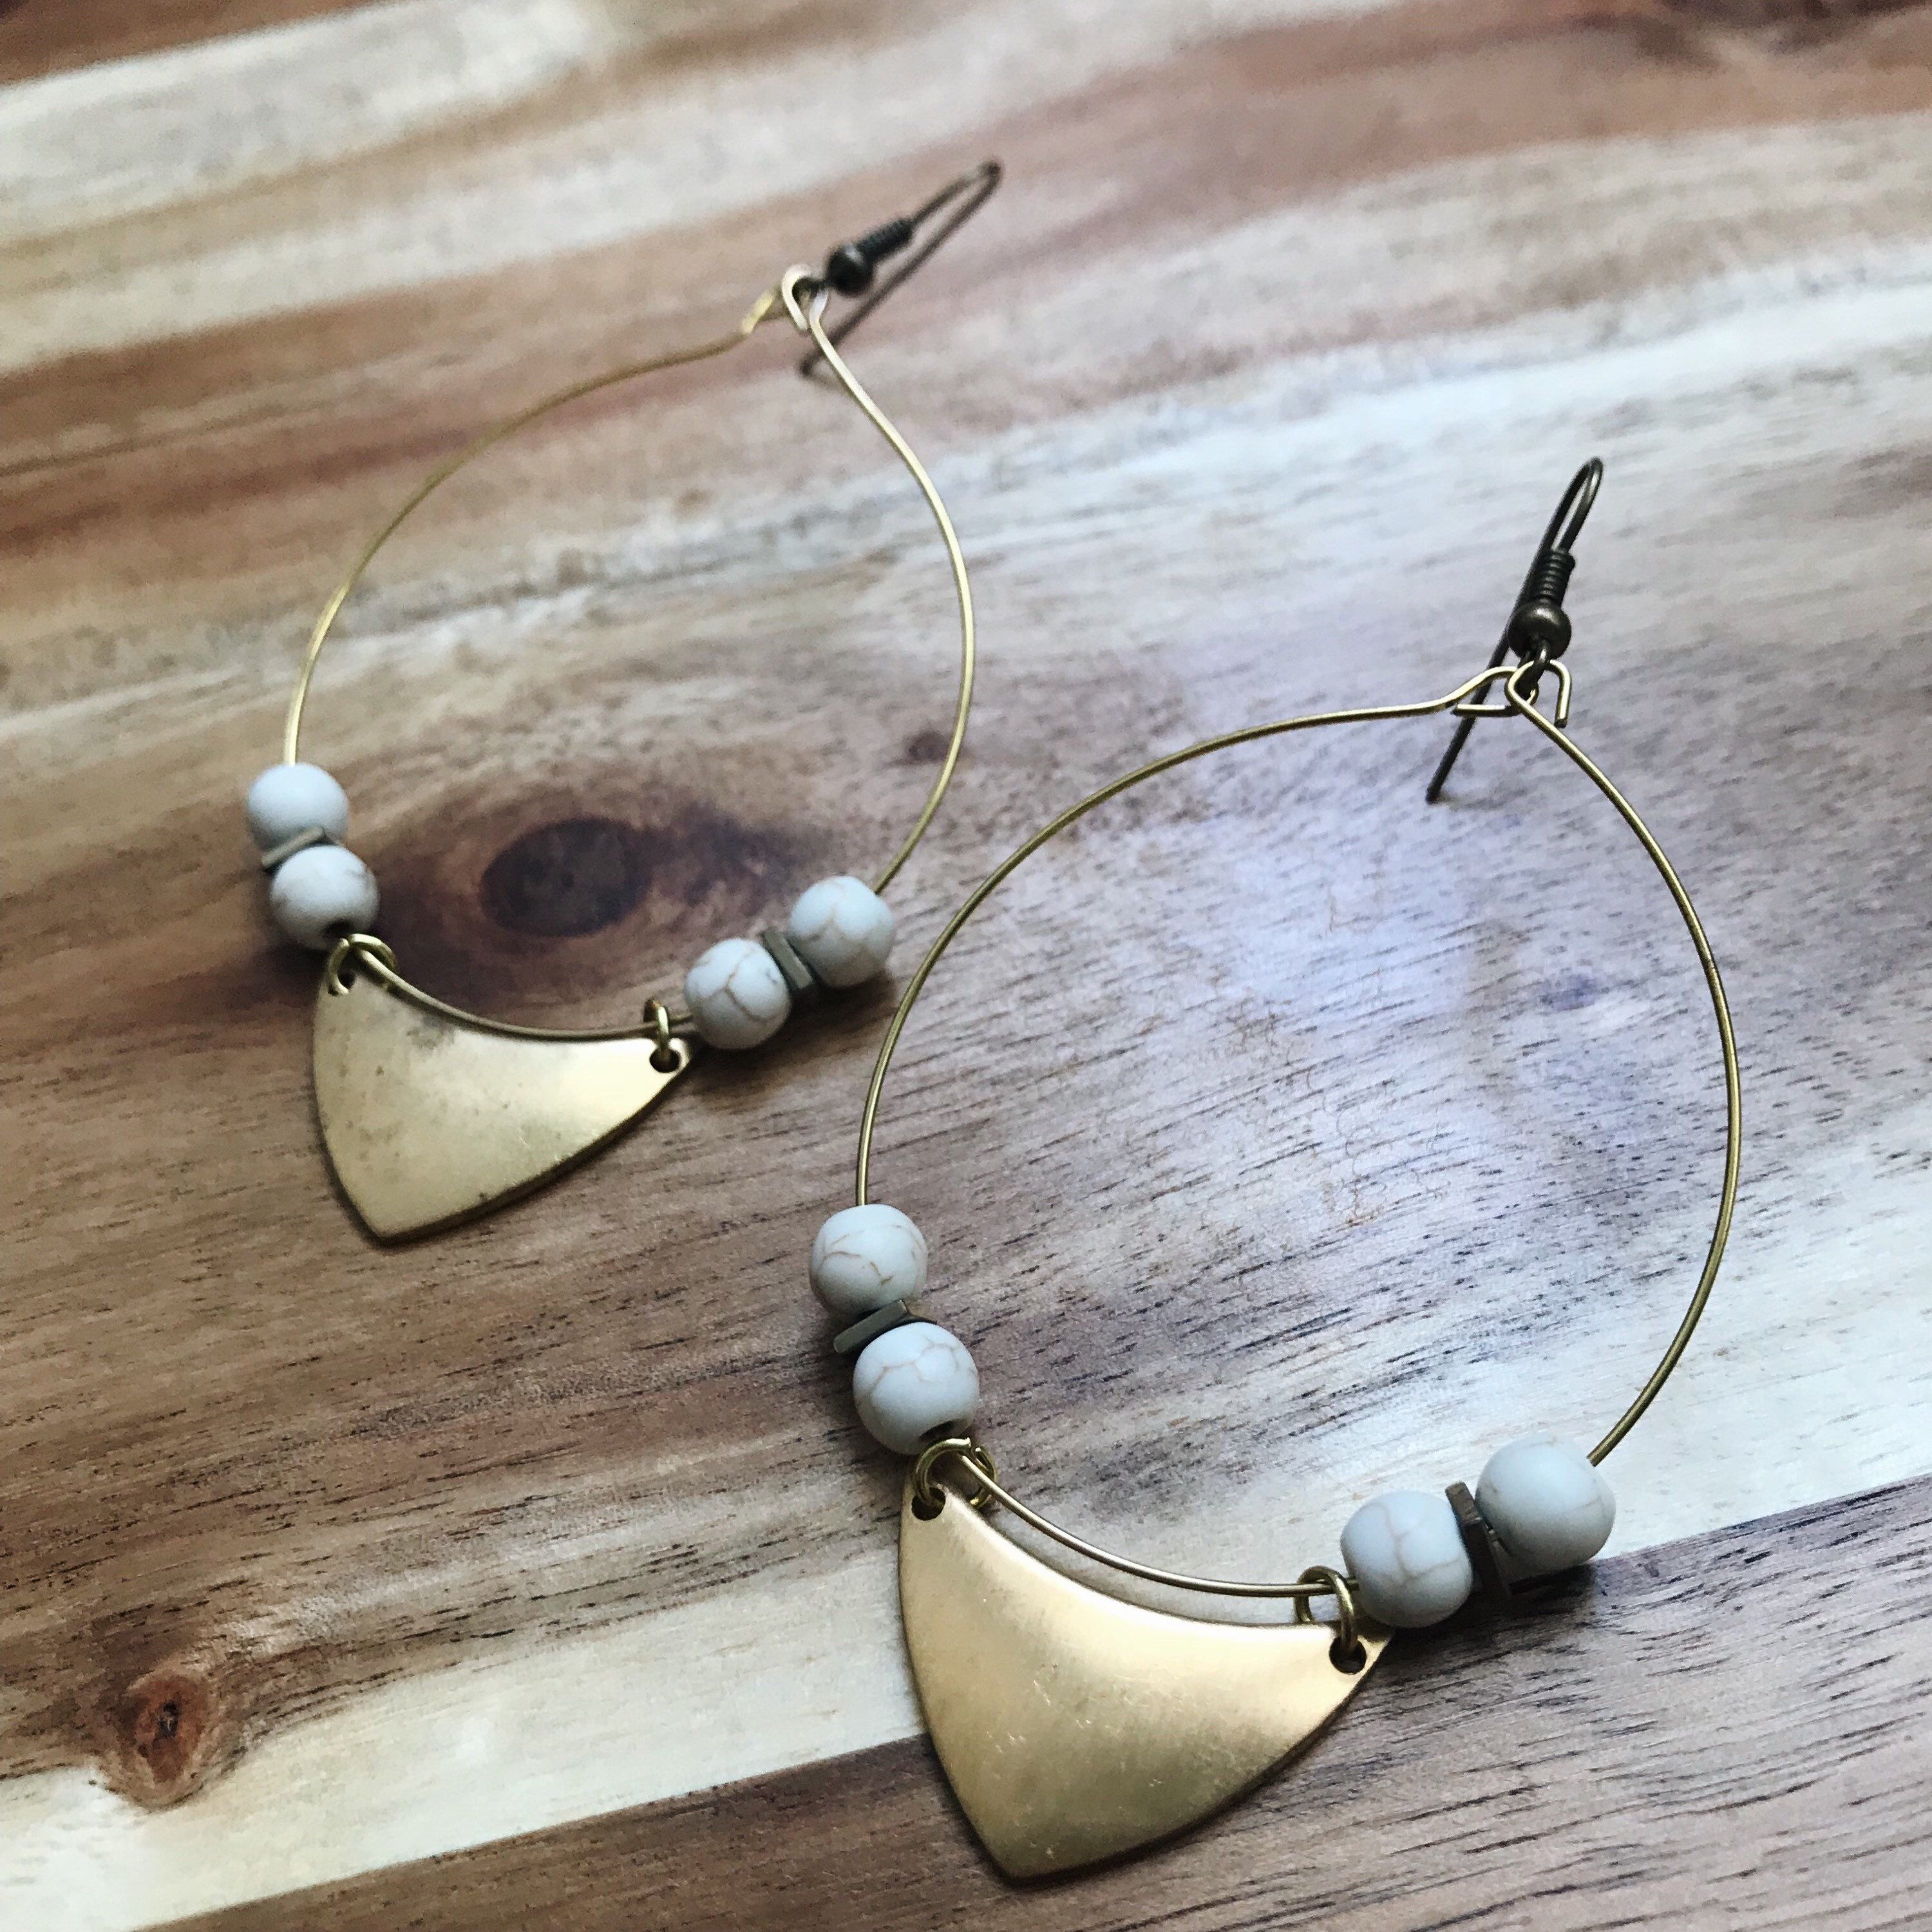 c70ad5bb0 Excited to share the latest addition to my #etsy shop: Large Statement  Earrings + Howlite Stones + Nickel Free + Tarnish Resistant Brass